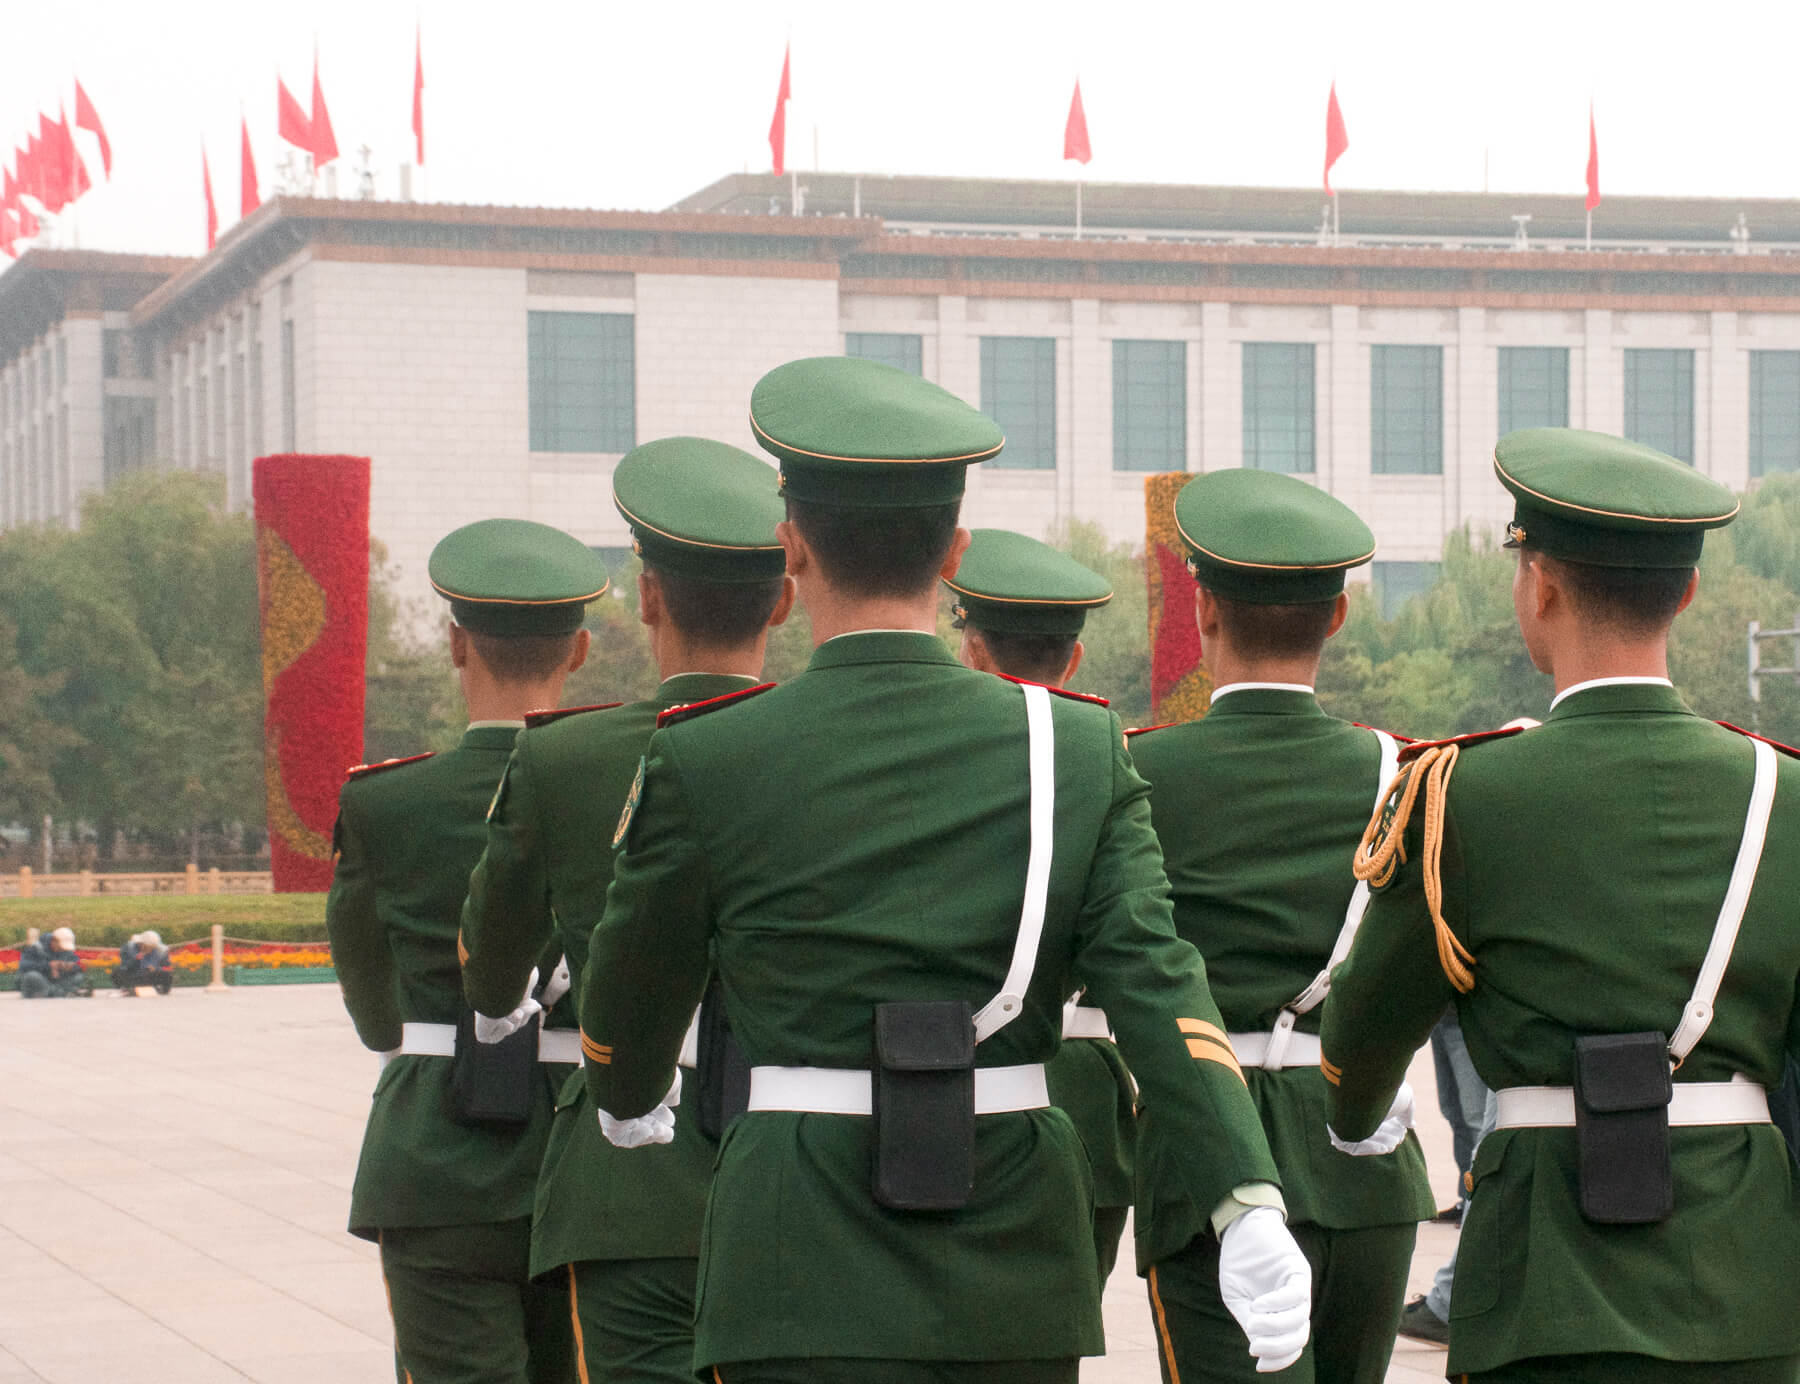 6 soldiers in their uniforms marching away from the camera with lots of China flags on the building in front of them